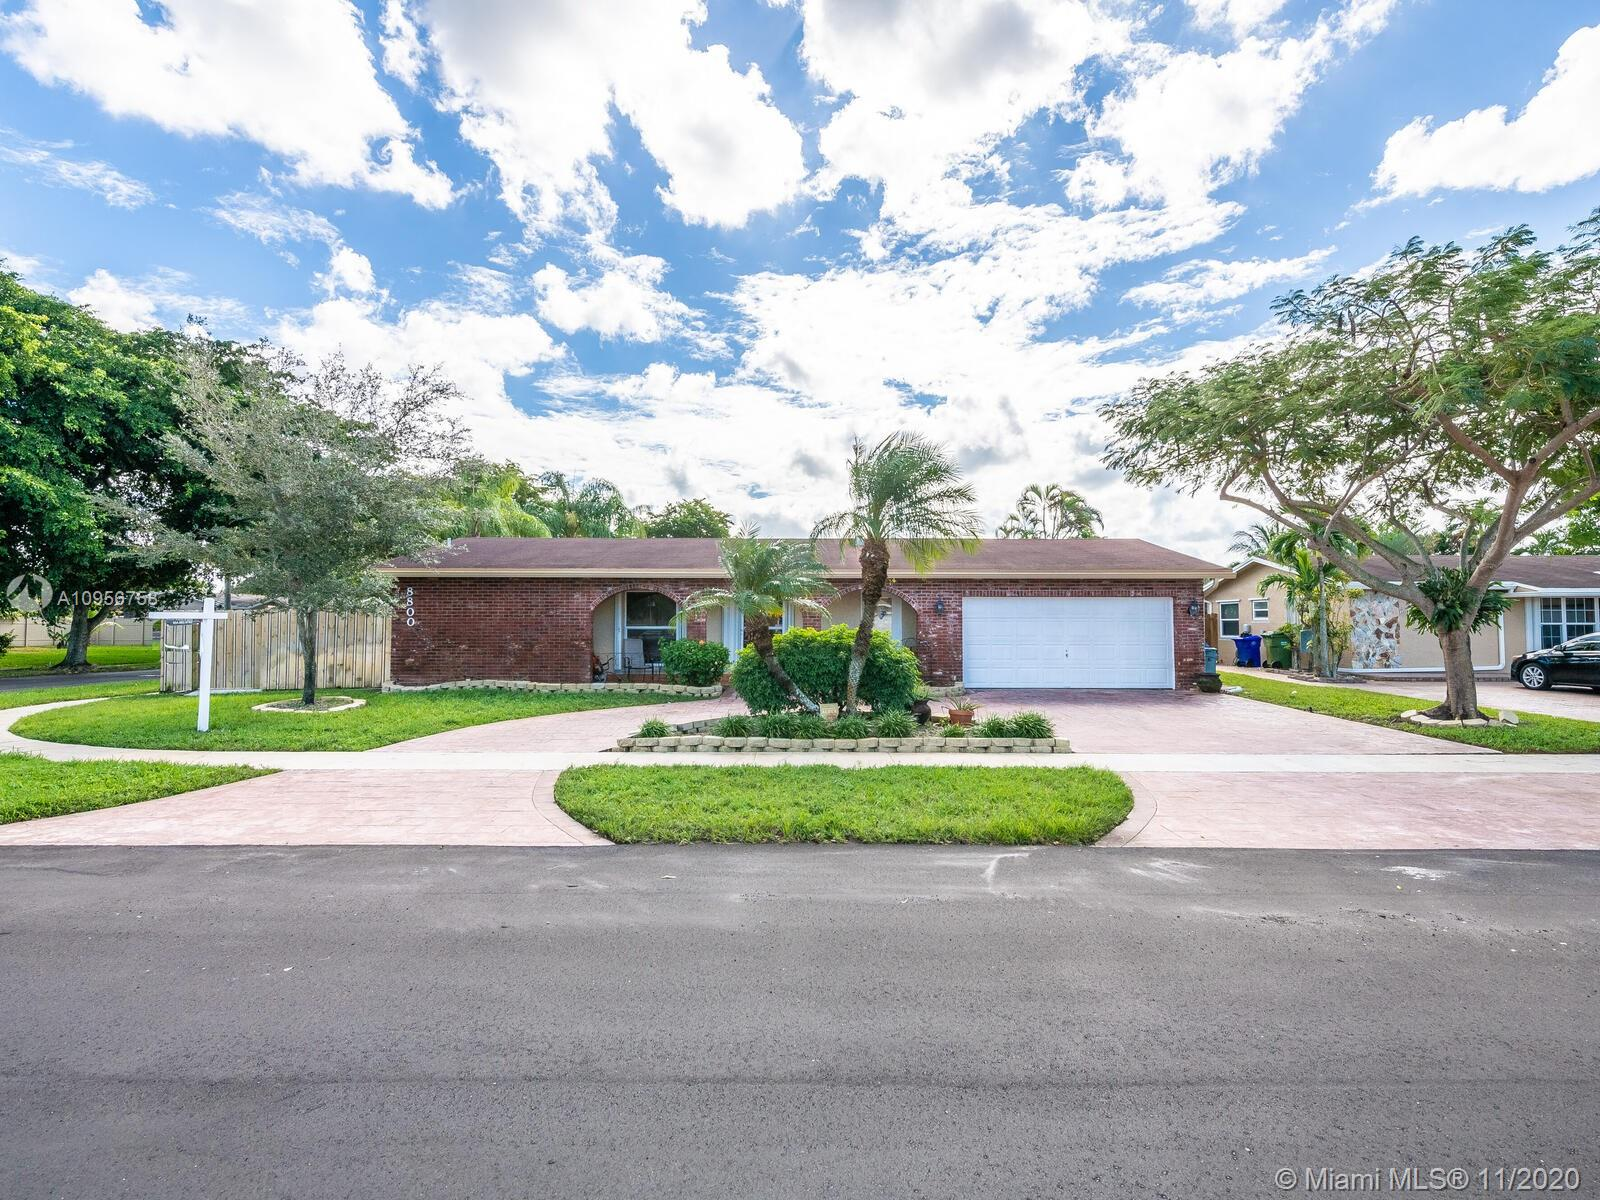 OPEN HOUSE SUN 11/29 - 12-3PM BRING ALL OFFERS !  Beautiful 4 bed, 2.5 bath, 2 car garage pool home on a corner lot with room for an RV or boat to park!  No HOA!  This home boasts 2195 sf under air biggest in area due to addition.  Stainless steel appliances, granite countertops and wood cabinets in kitchen.  Spacious Master bedroom and nice size other bedrooms.  Entire home has tile recently installed in 2018. Hurricane Impact Windows & Doors plus accordion shutters.  New fence installed 2019.  Newer pavers throughout side and back yard installed 2018.  Storage shed included for extra storage space. Wheelchair accessible home.  State of the art security system and more...   HURRY! WON'T LAST!!